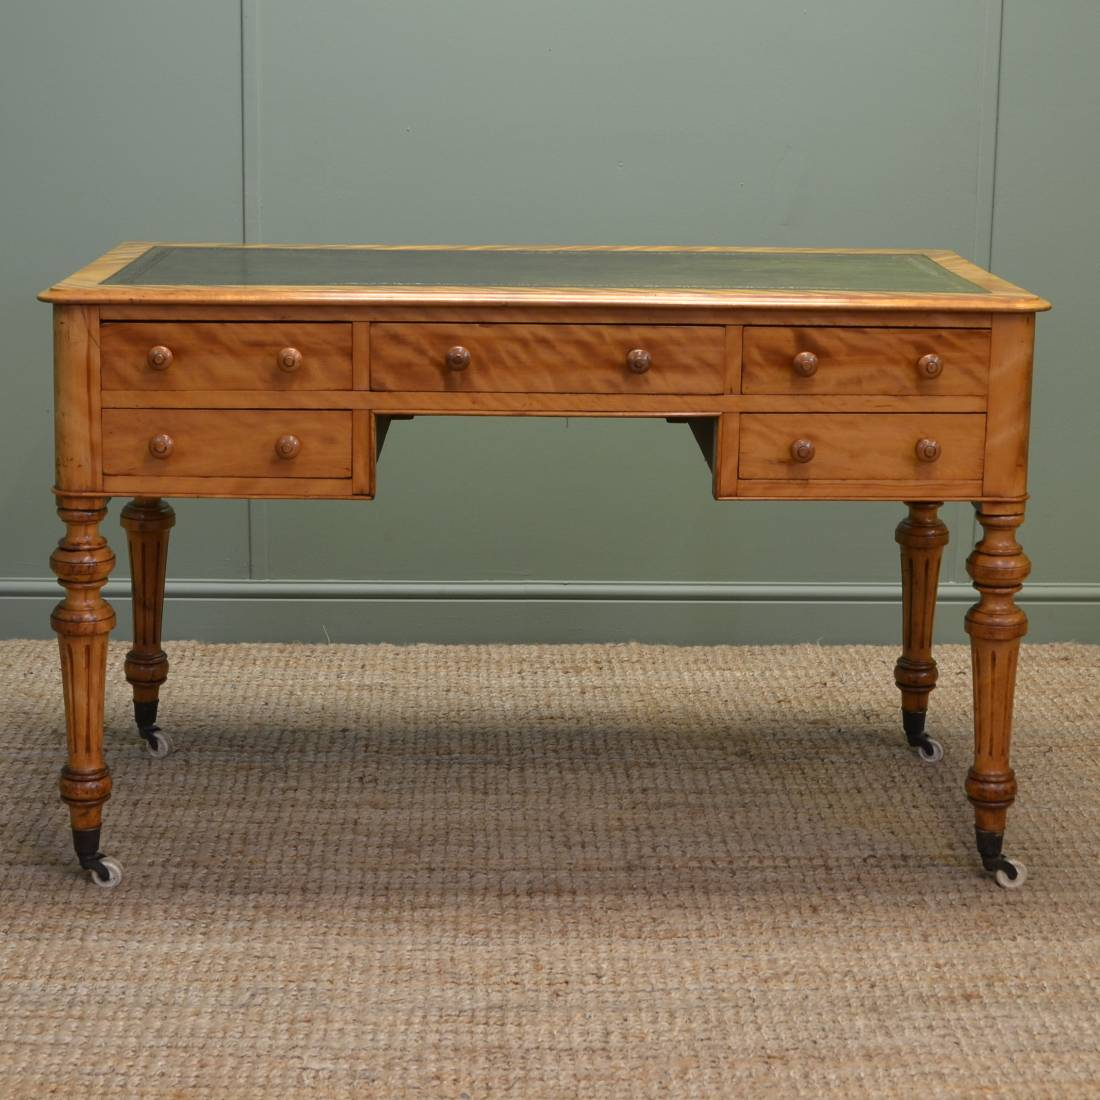 Stunning Quality Unusual Satin Birch Antique Desk / Writing Table - Stunning Quality Unusual Satin Birch Antique Desk / Writing Table